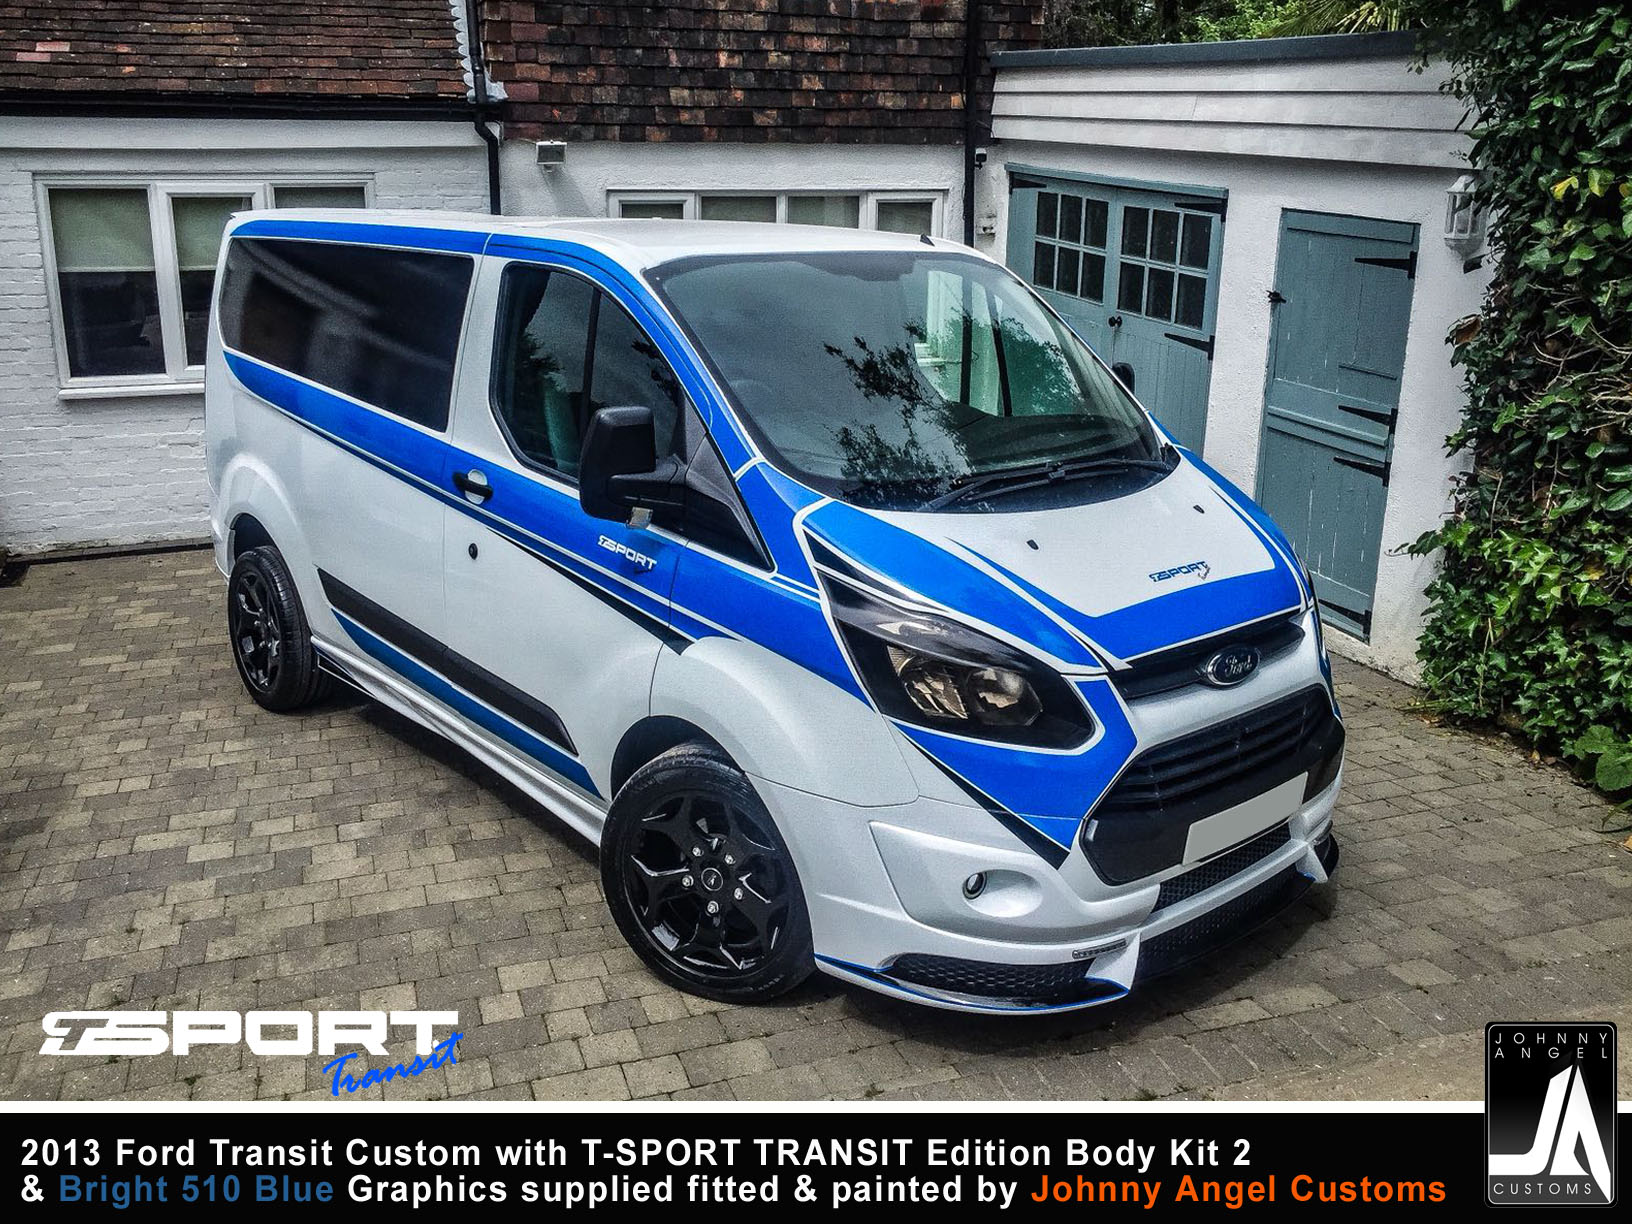 2013 Ford Transit Custom with T-SPORT TRANSIT Edition Body Kit 2 By Johnny Angel Customs pic14